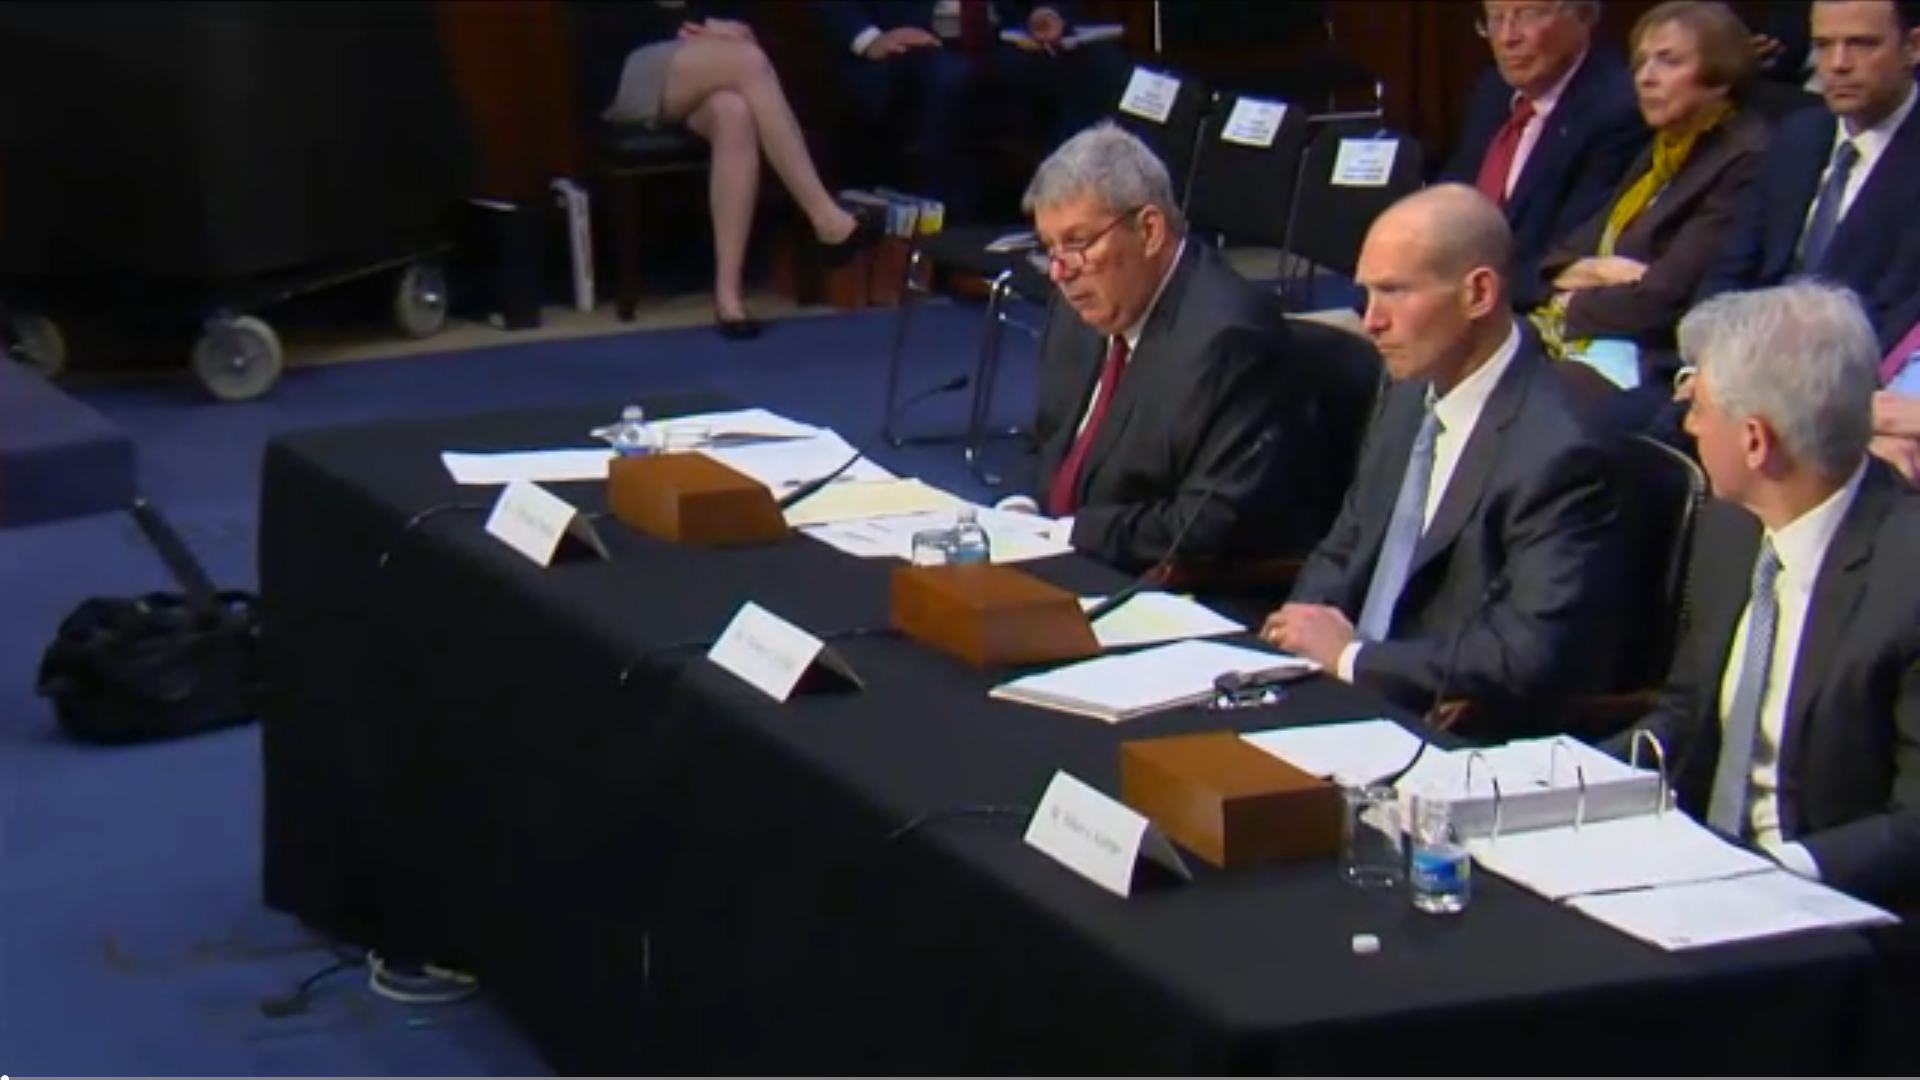 Senate committee condemns Valeant's business model